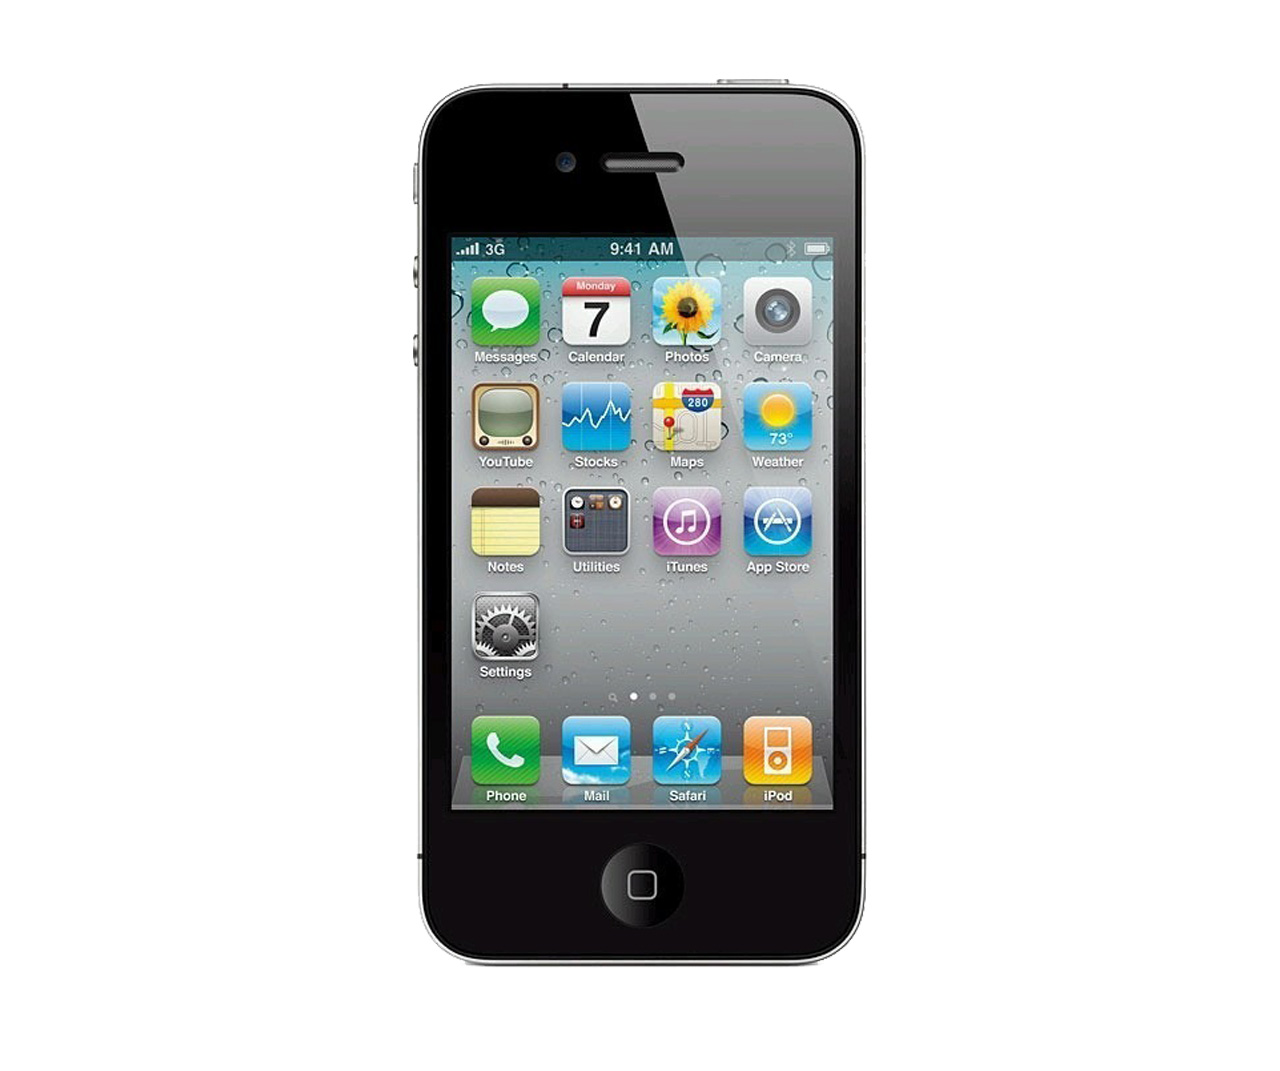 iPhone 4 Power Button/ Lock Button Repair